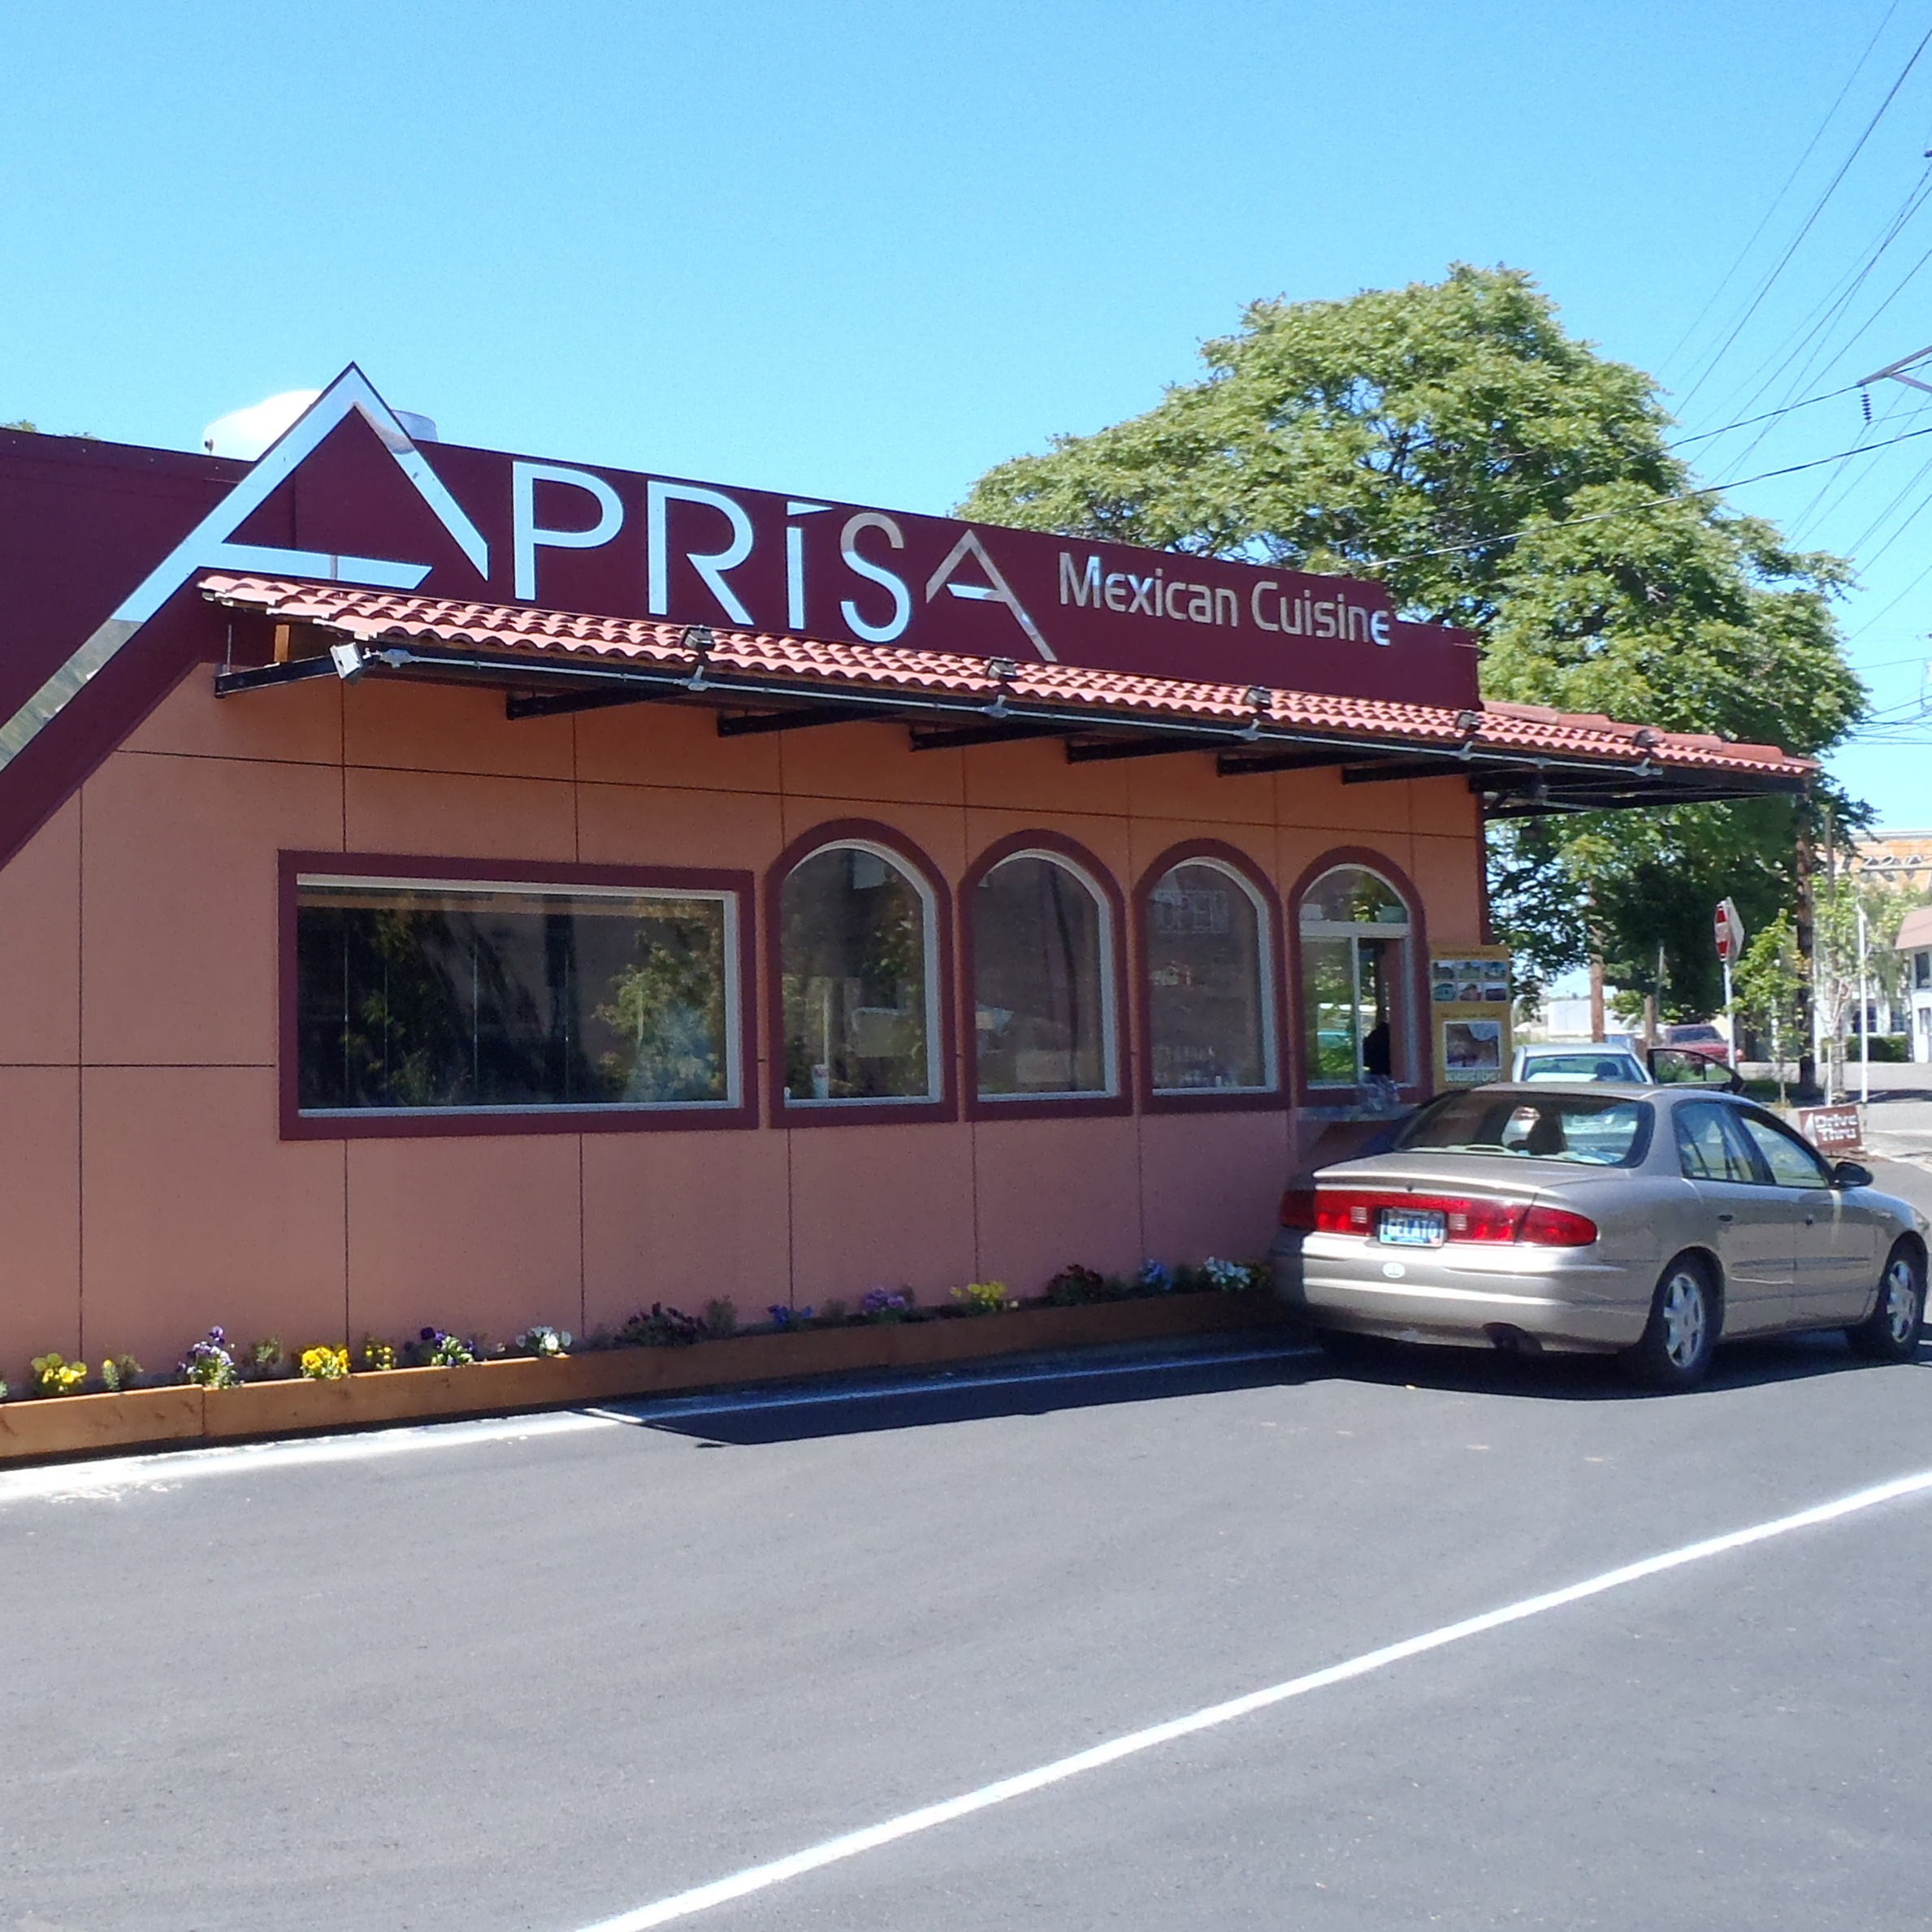 Forget big box stores how about a big box house ncpr news for Aprisa mexican cuisine portland